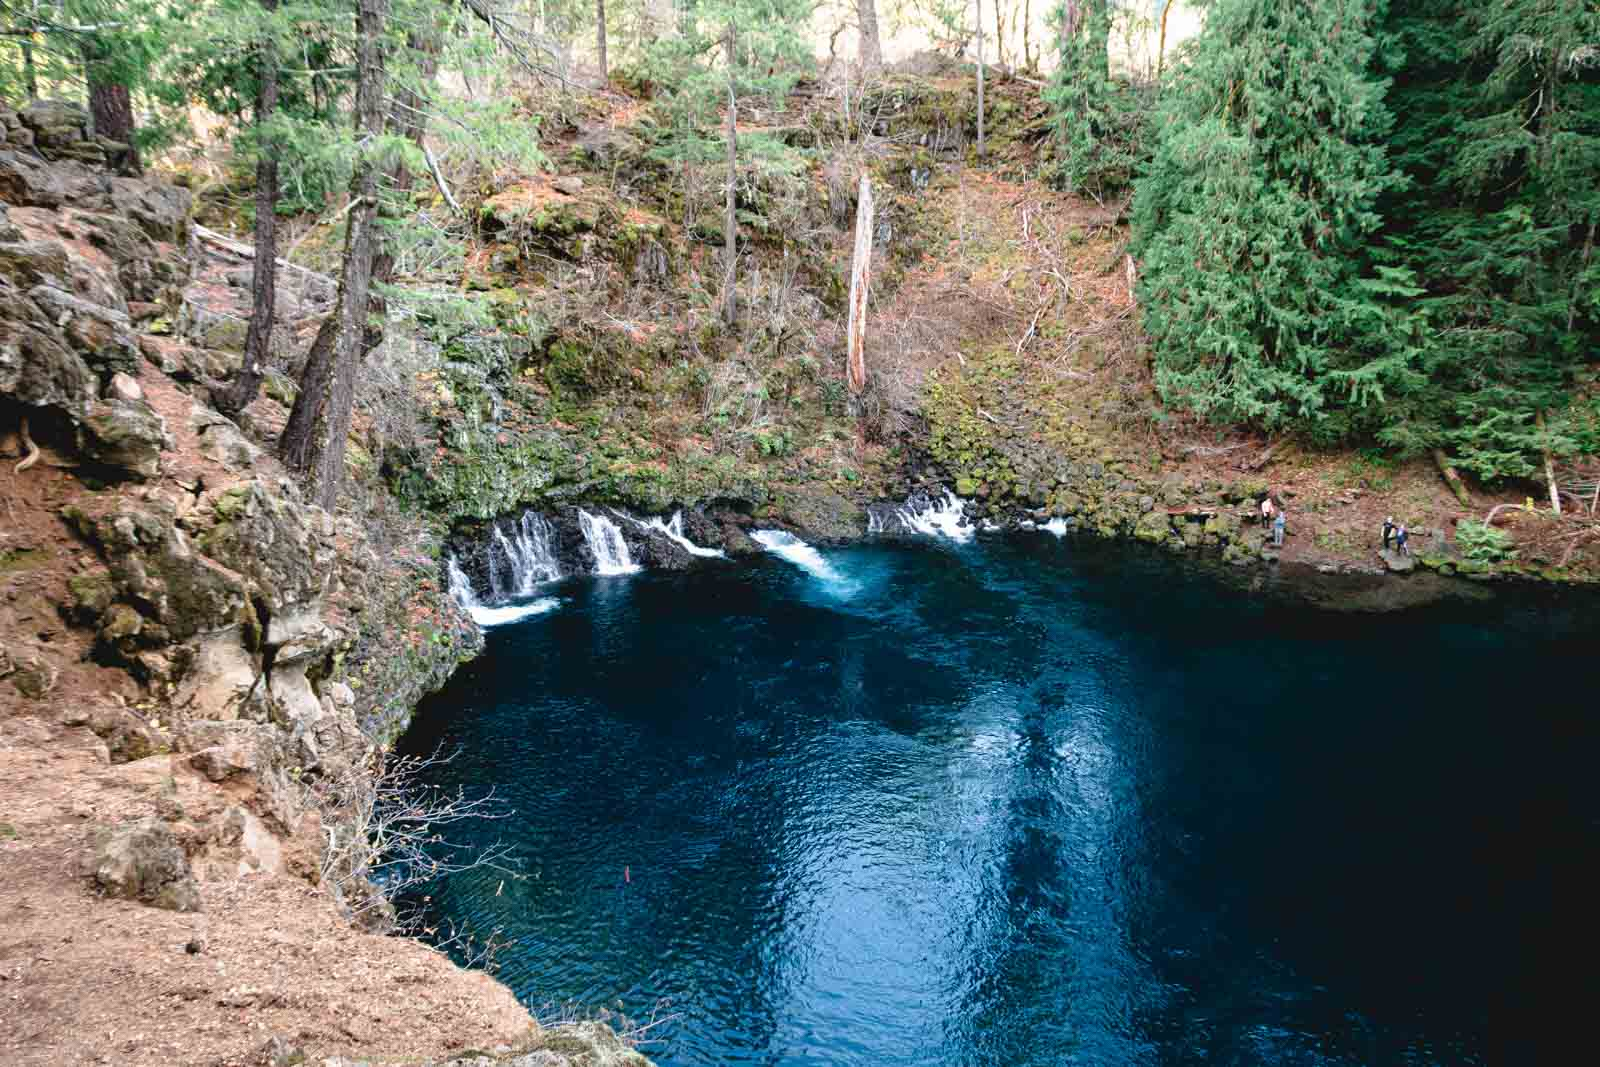 The Blue Pool will delight you with its beauty